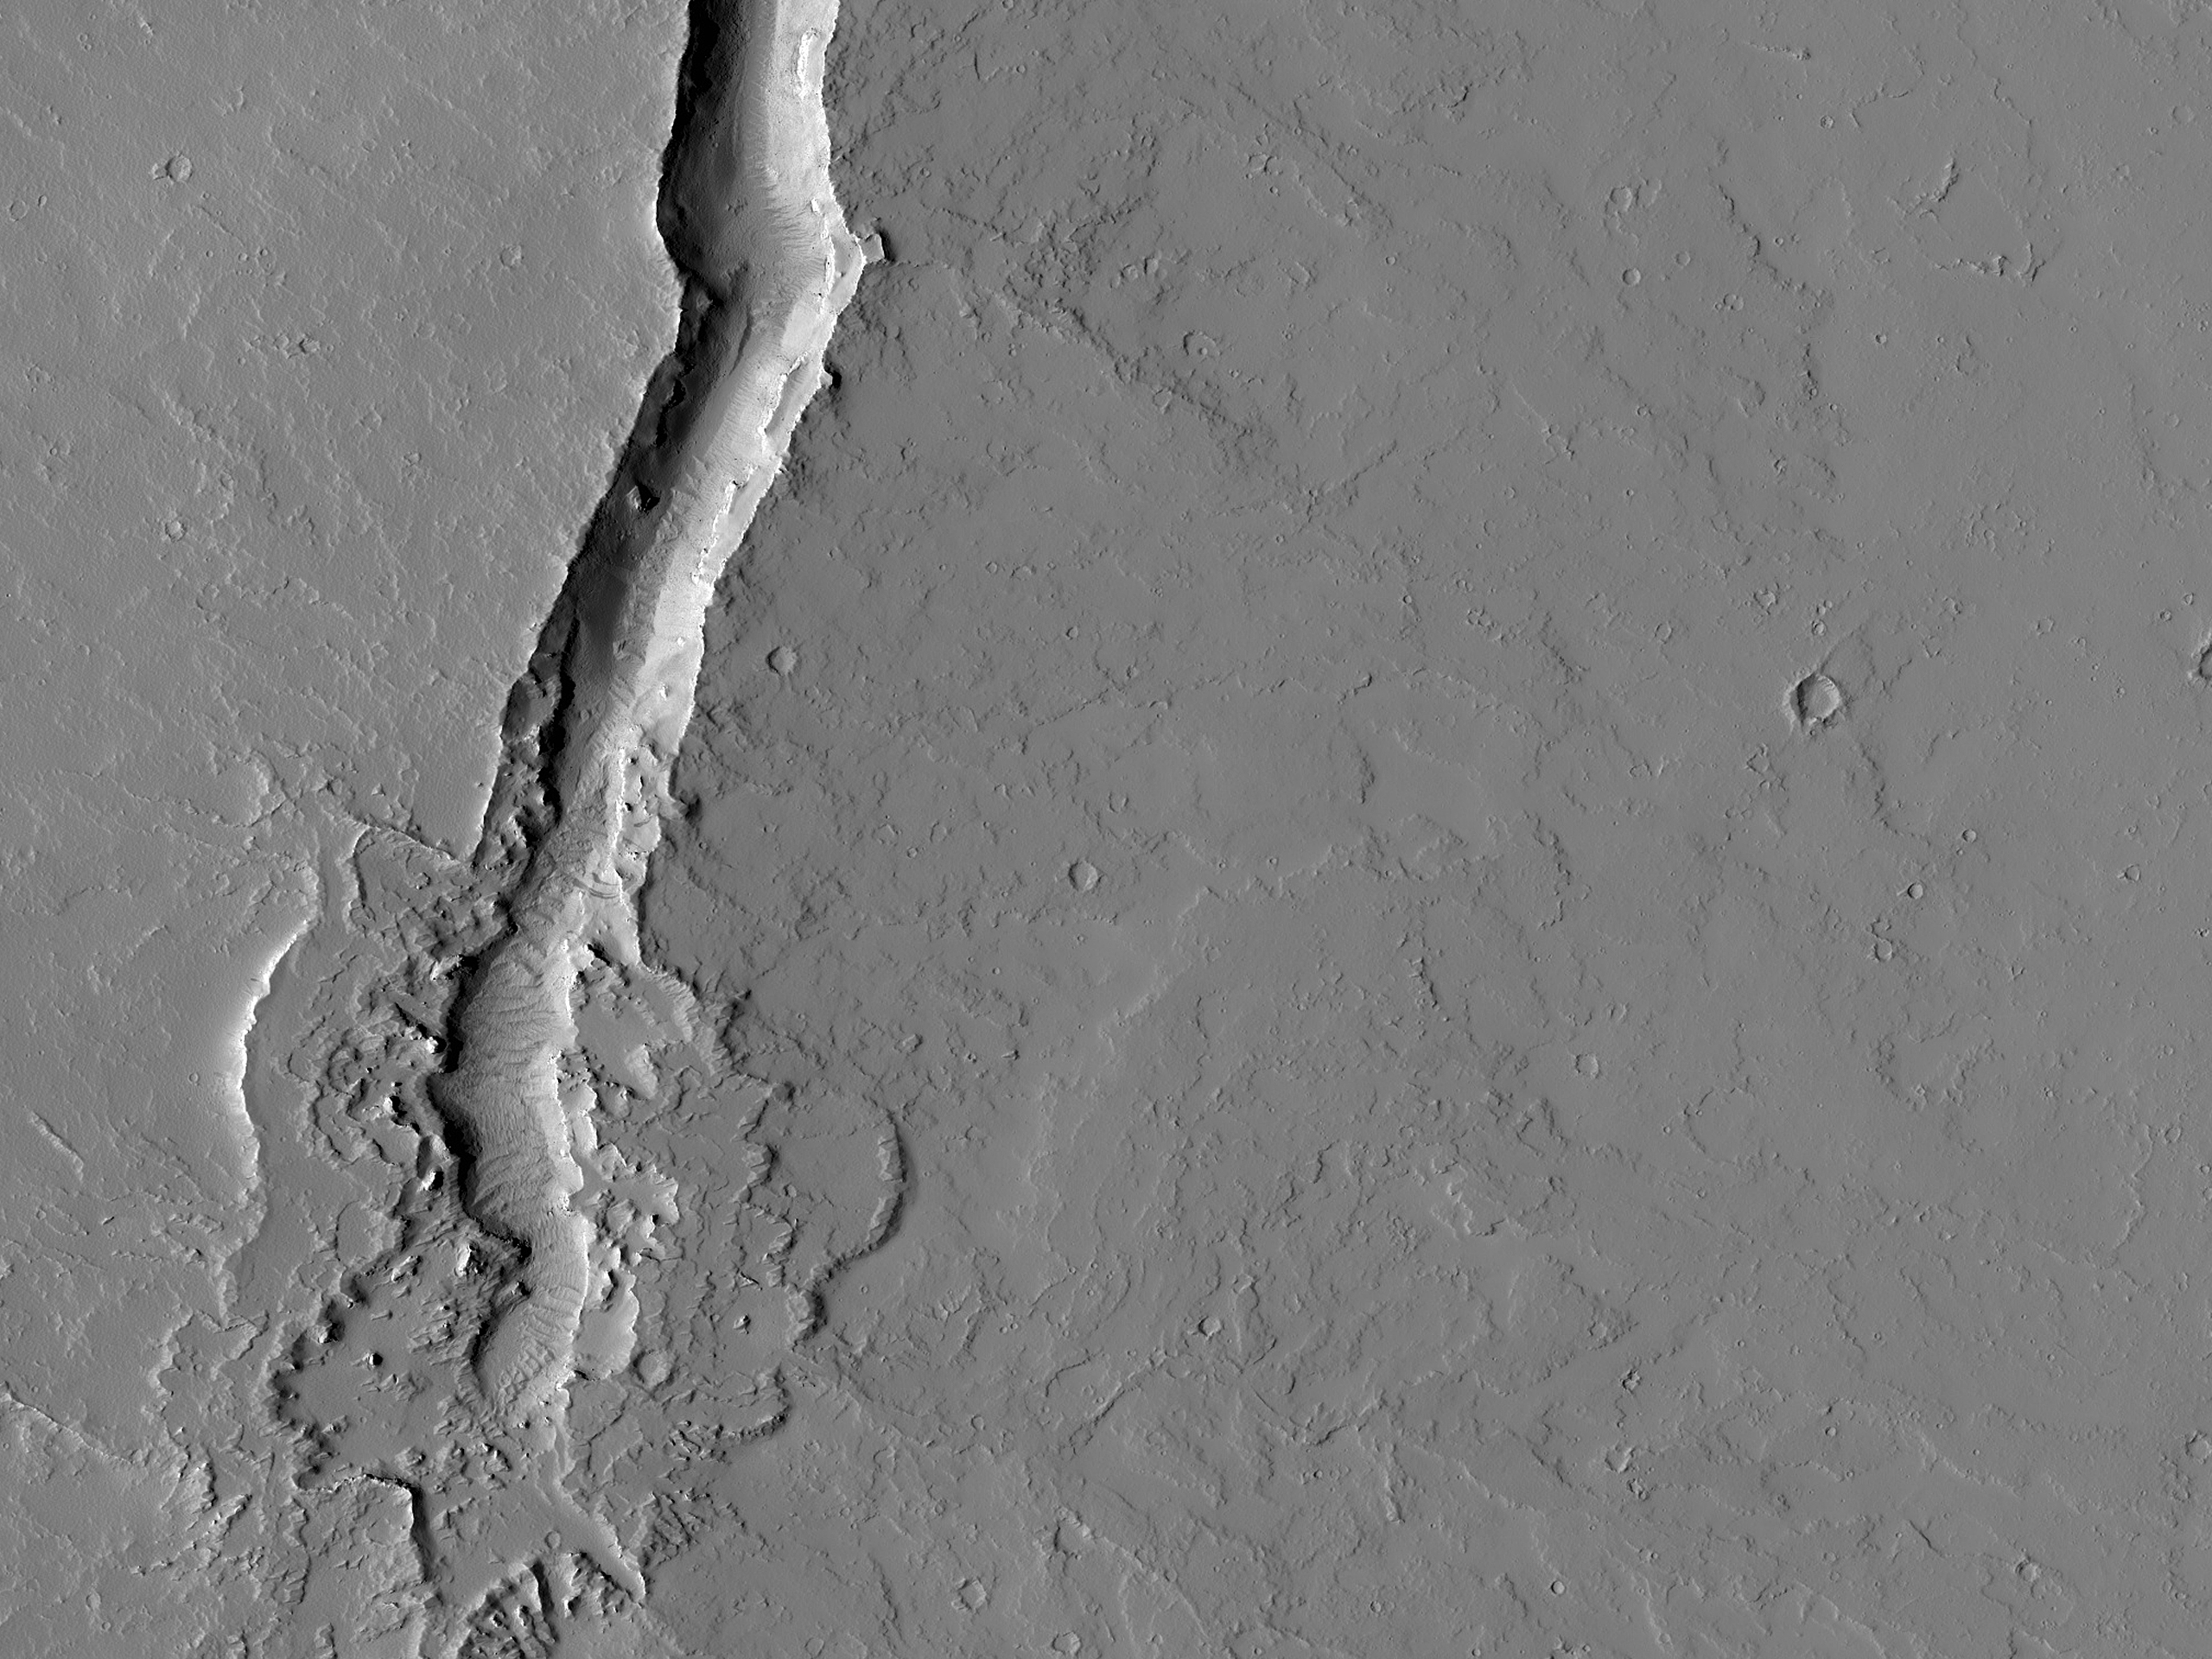 A Volcanic Vent South of Olympica Fossae